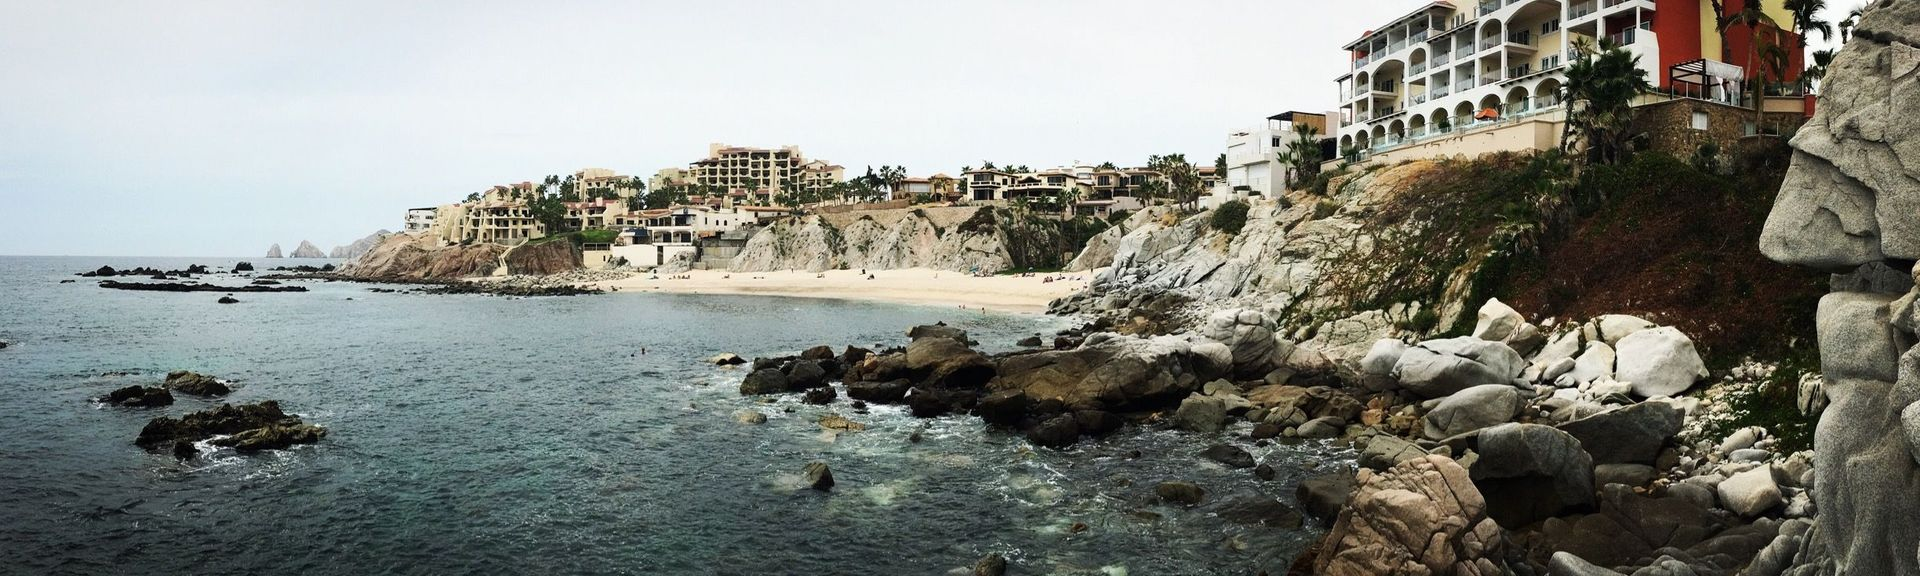 Cabo Bello, B.C.S., Mexico